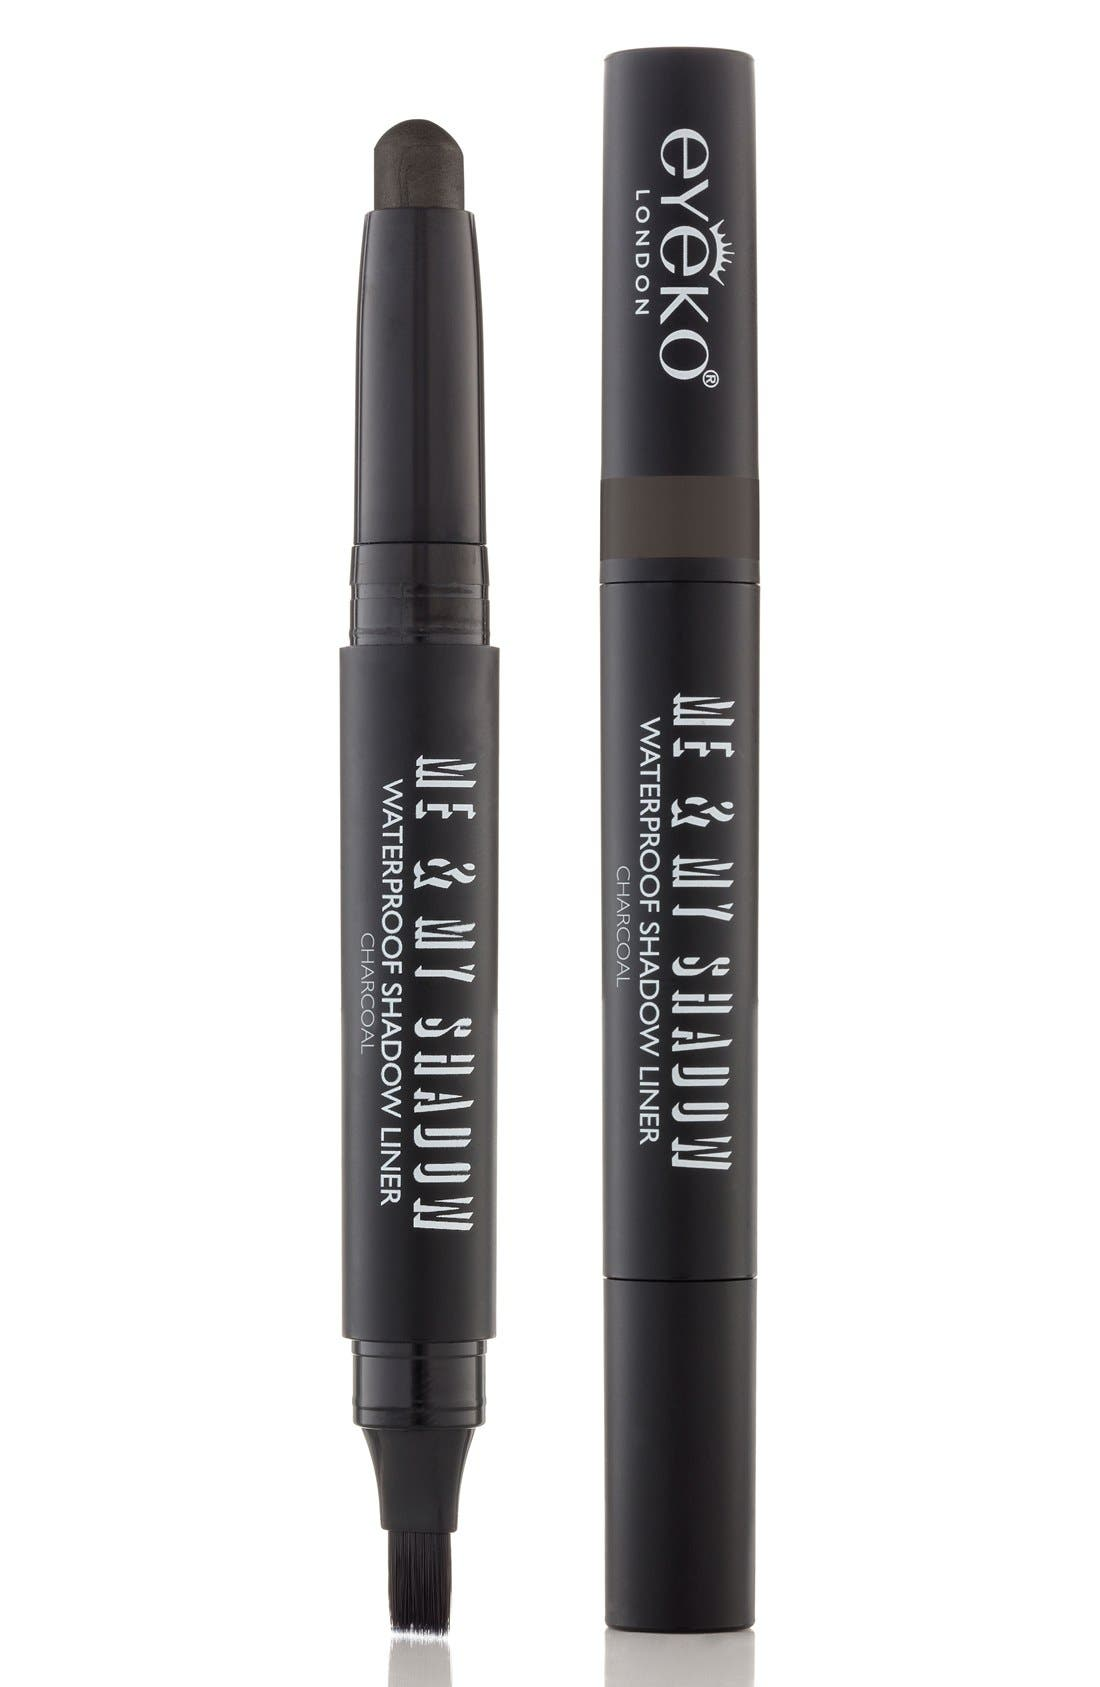 Eyeko 'Me & My Shadow' Waterproof Eyeshadow & Eyeliner